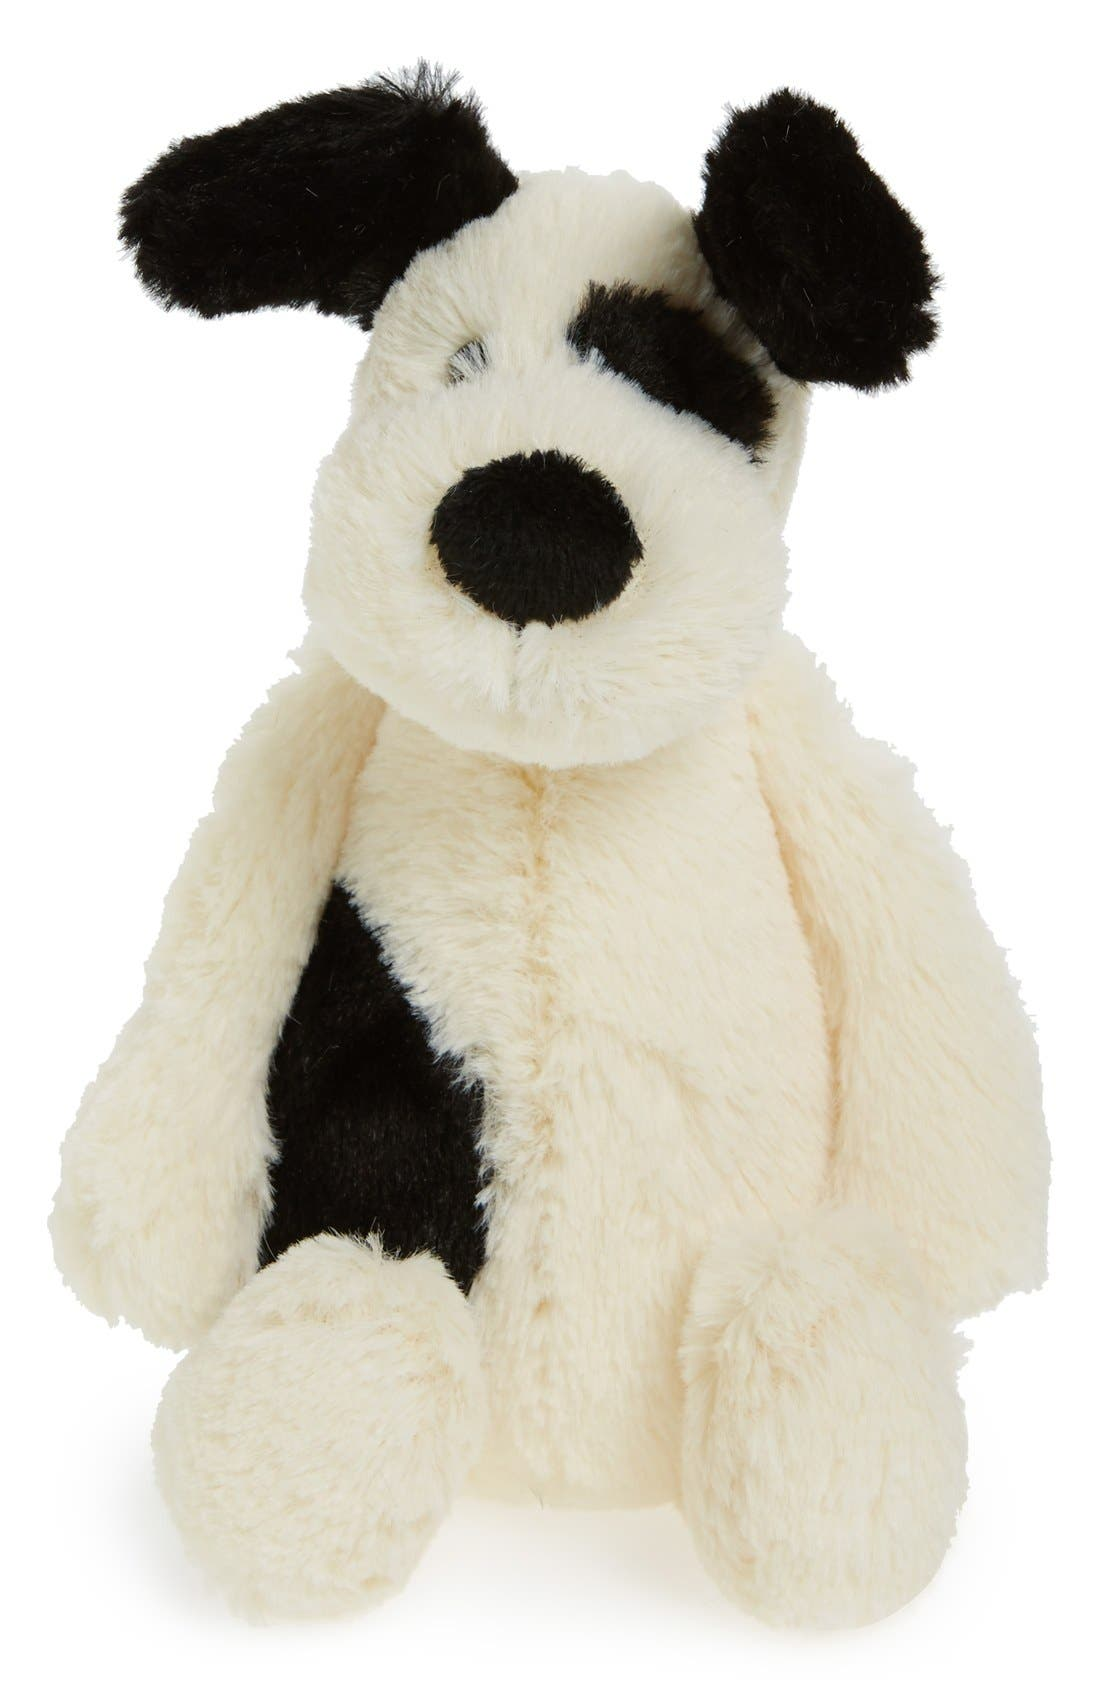 JELLYCAT 'Small Bashful Puppy' Stuffed Animal